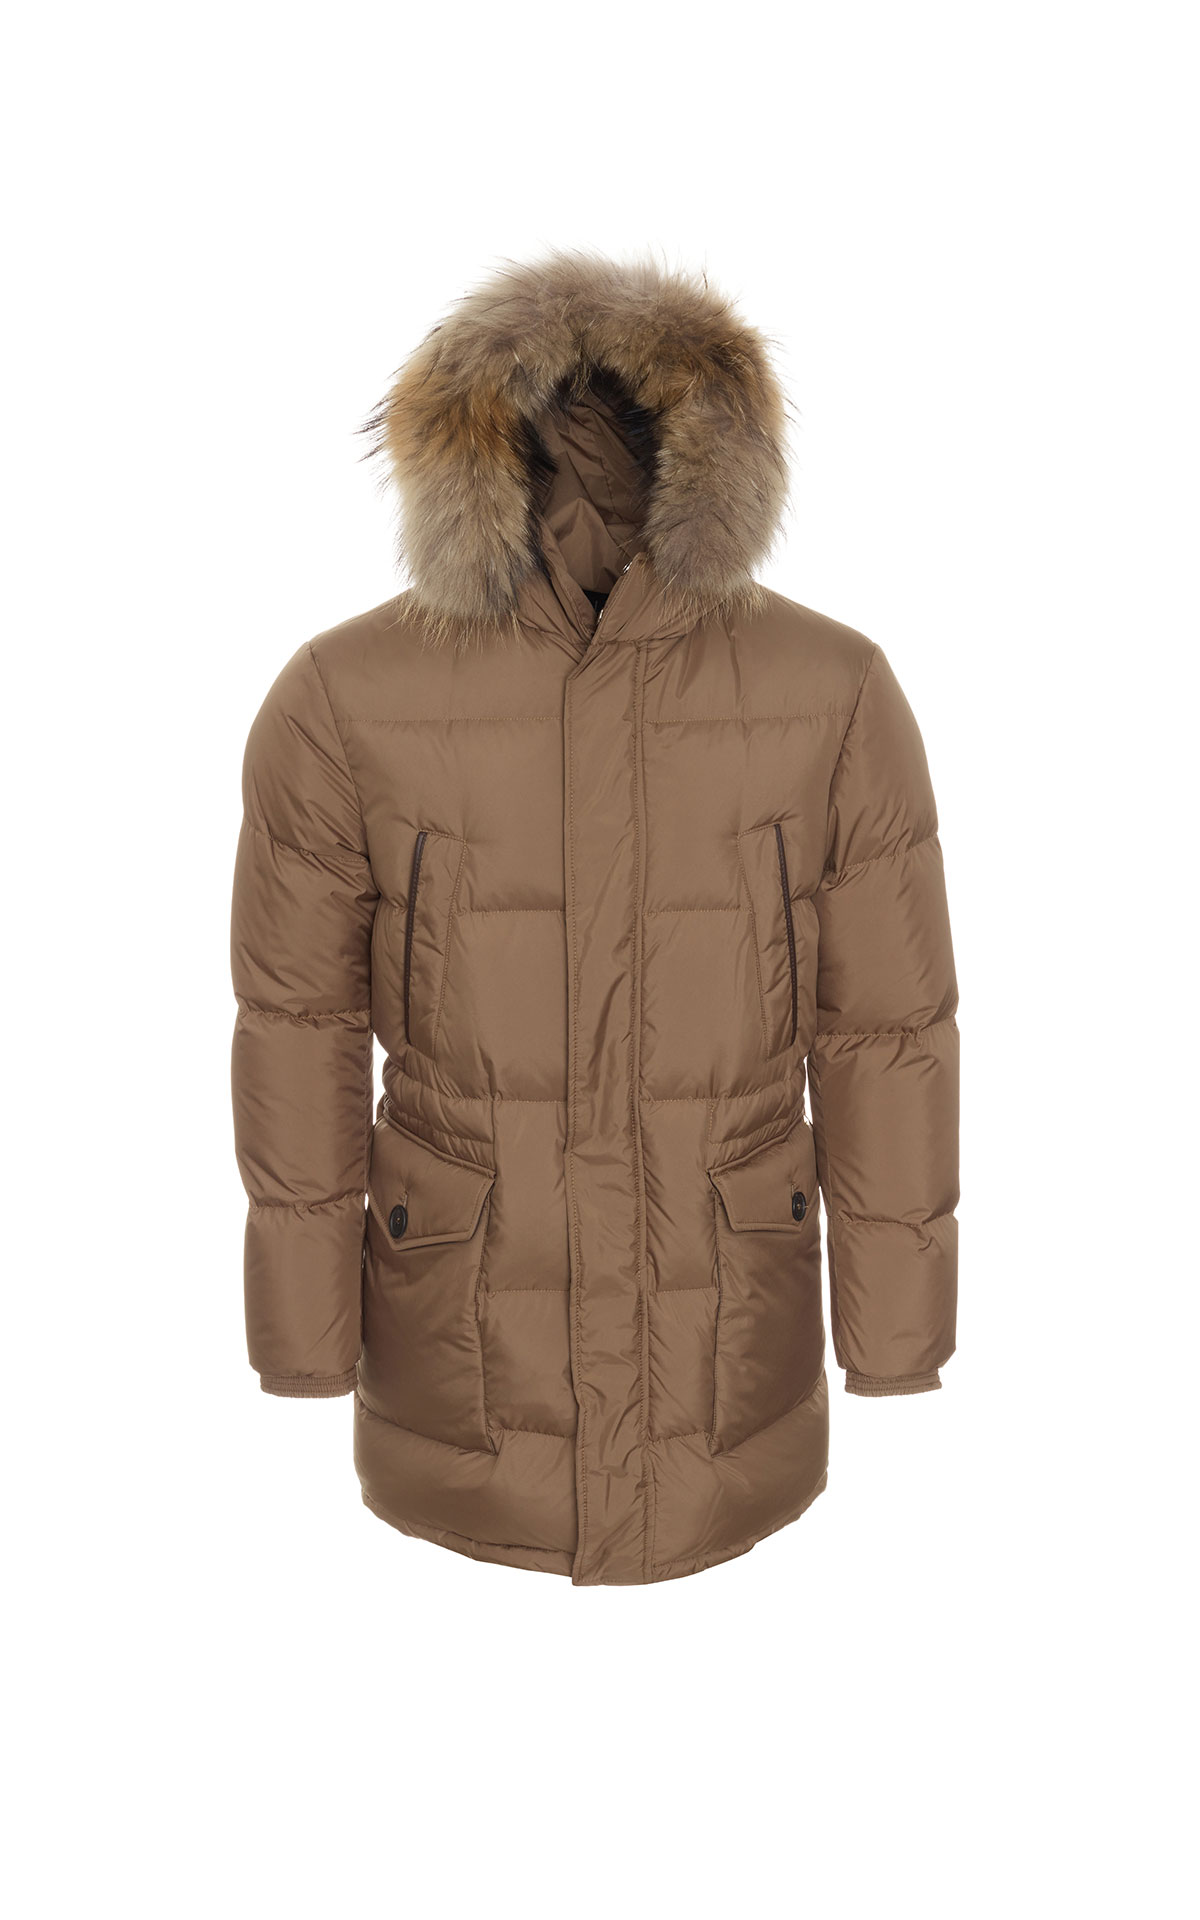 Dunhill Cinnammon hooded parka from Bicester Village